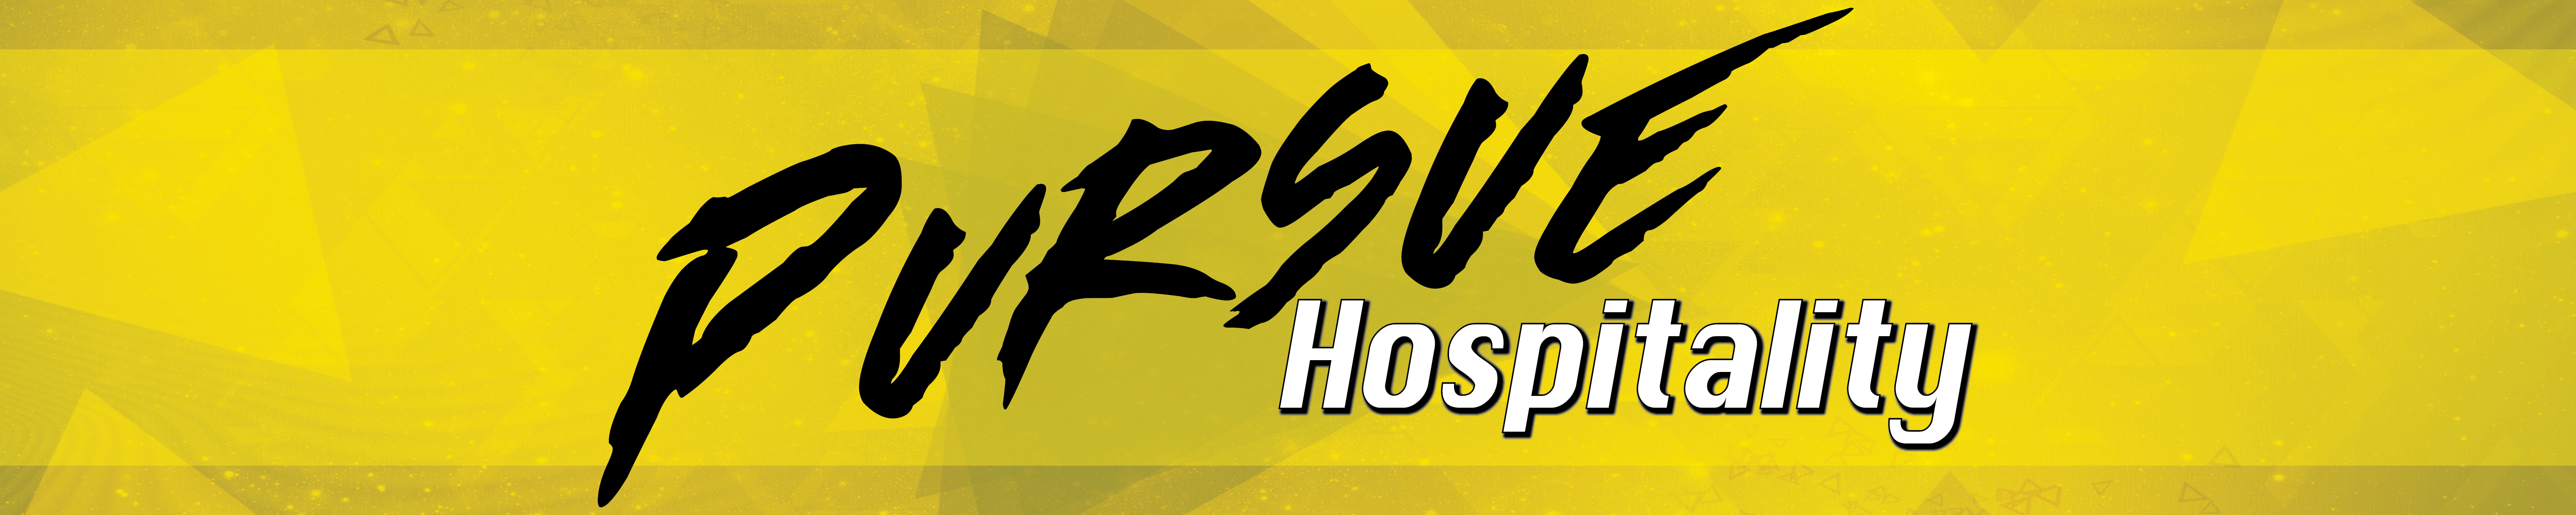 Vision-Pursue Hospitality-Banner